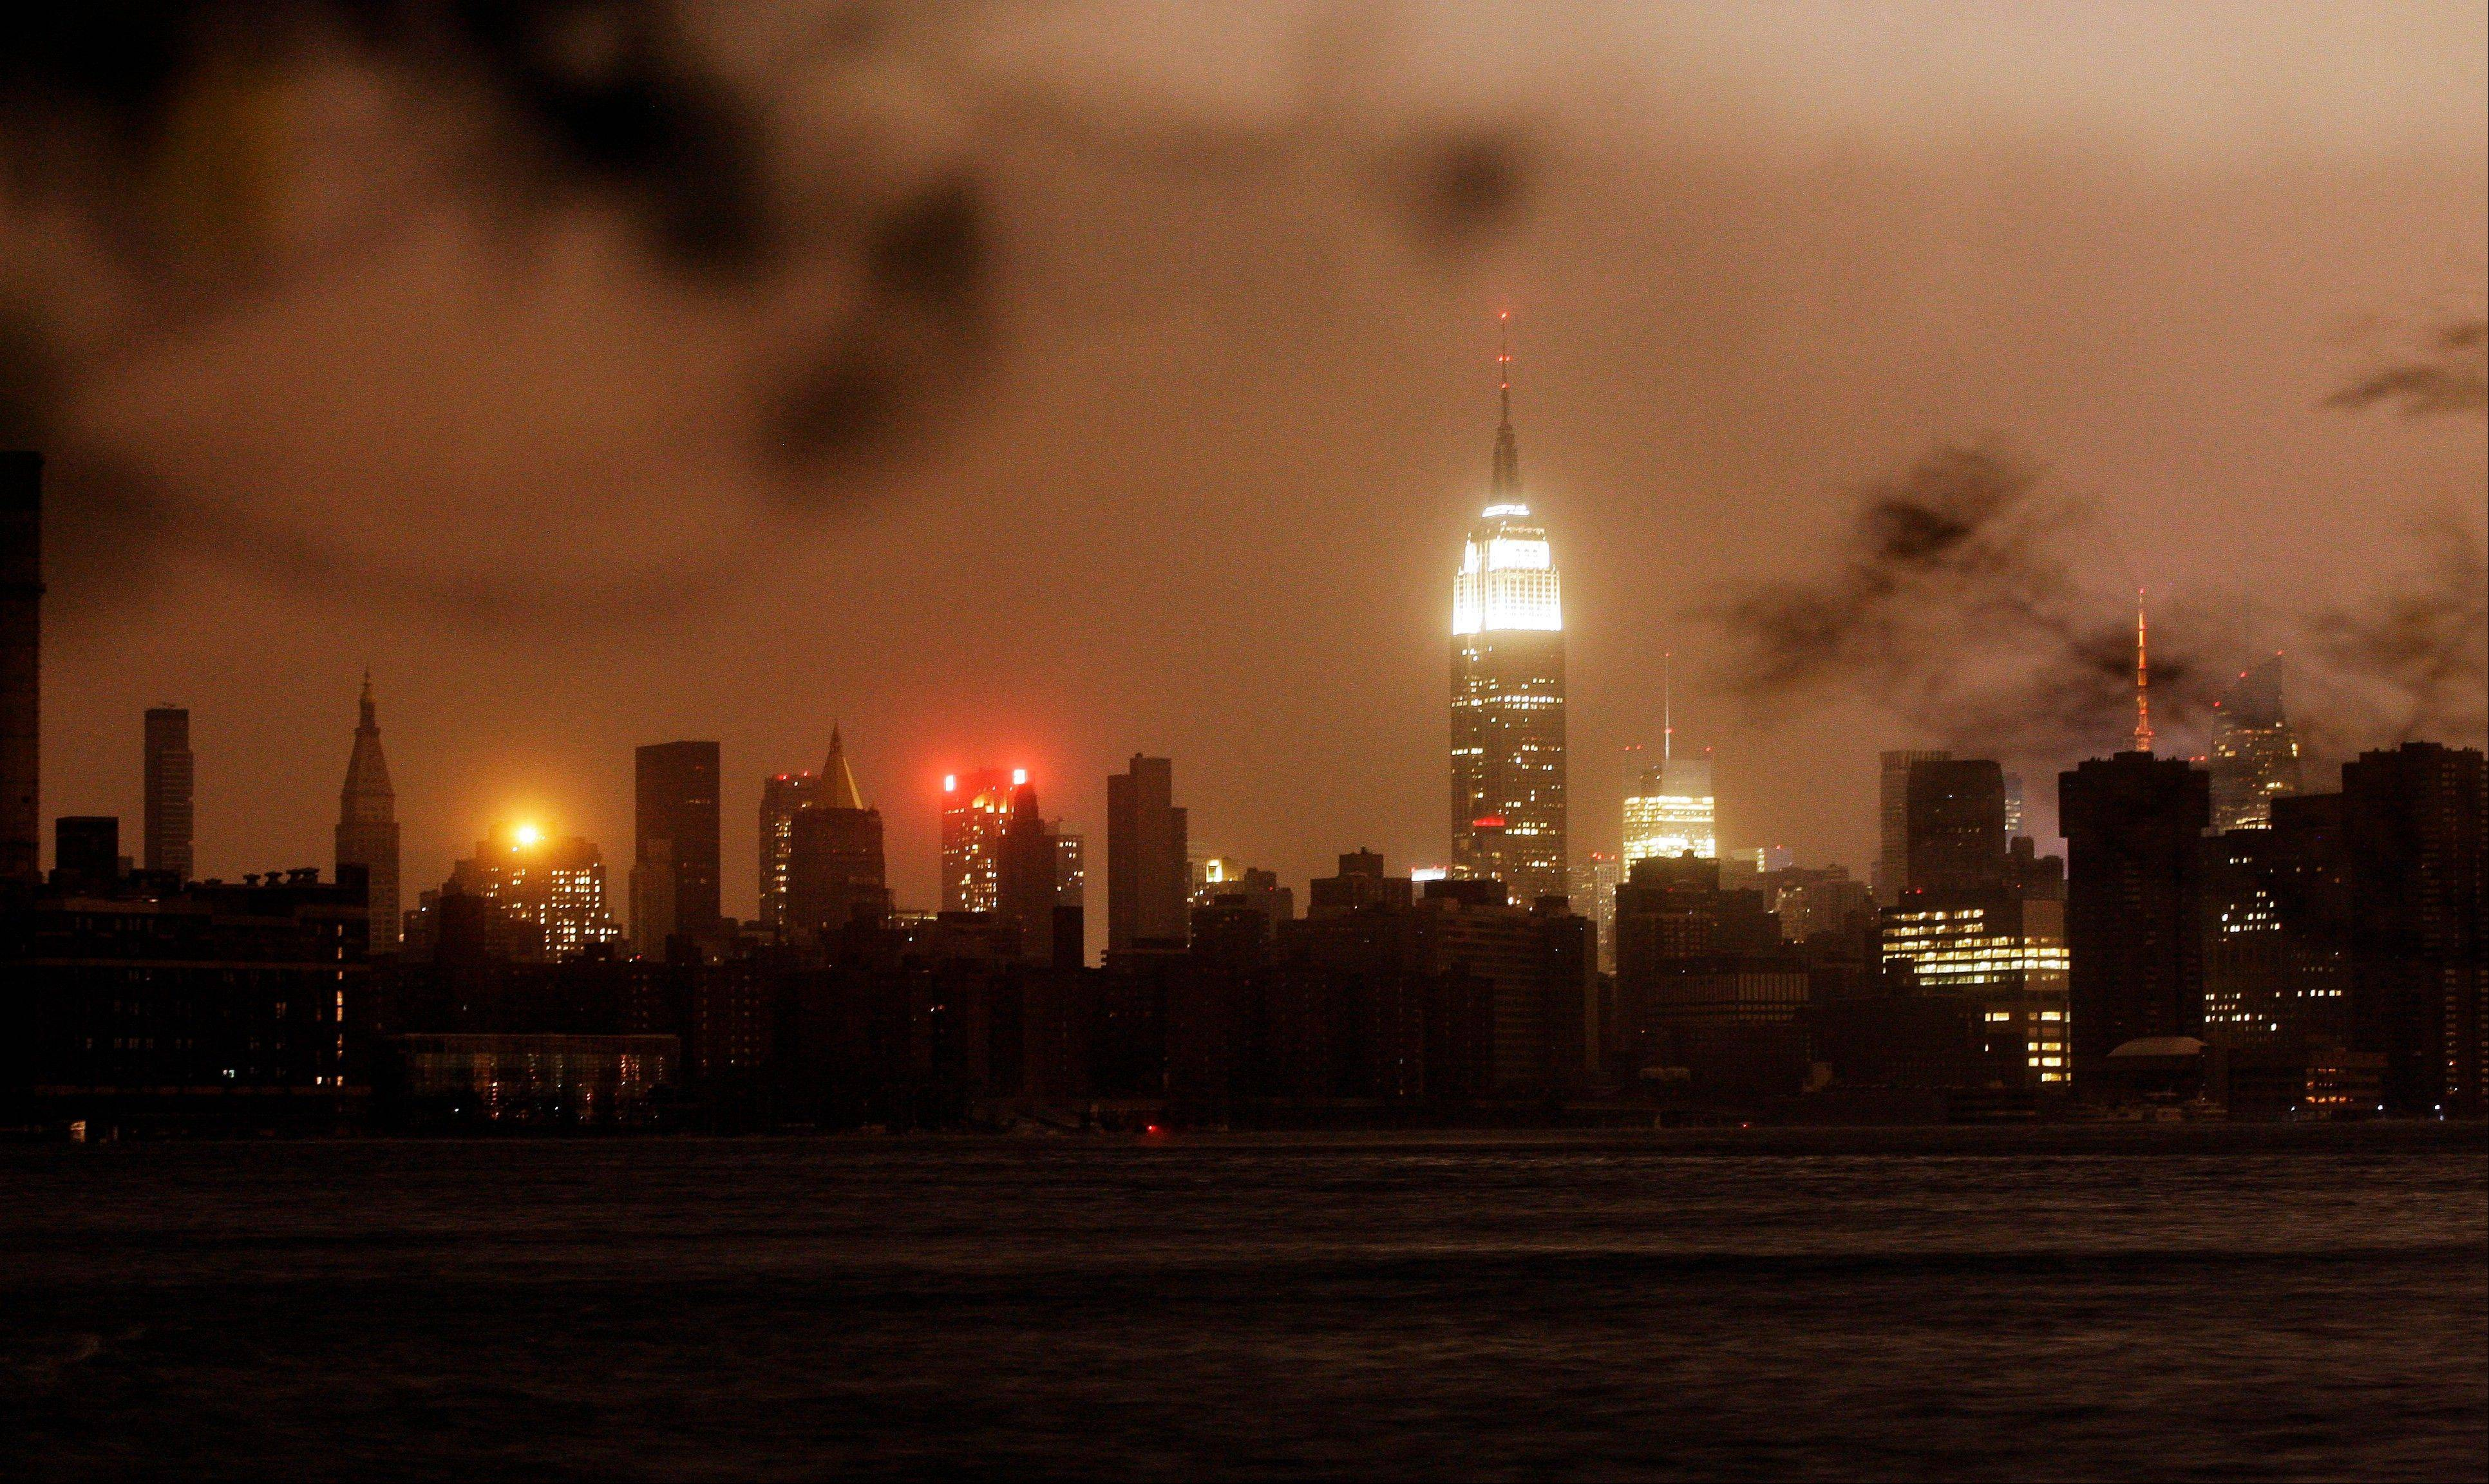 The New York skyline remains dark Monday, Oct. 29, 2012, as seen from the Williamsburg neighborhood in the Brooklyn borough of New York. In an attempt to lessen damage from saltwater to the subway system and the electrical network beneath the city's financial district, New York City's main utility cut power to about 6,500 customers in lower Manhattan. But a far wider swath of the city was hit with blackouts caused by flooding and transformer explosions.